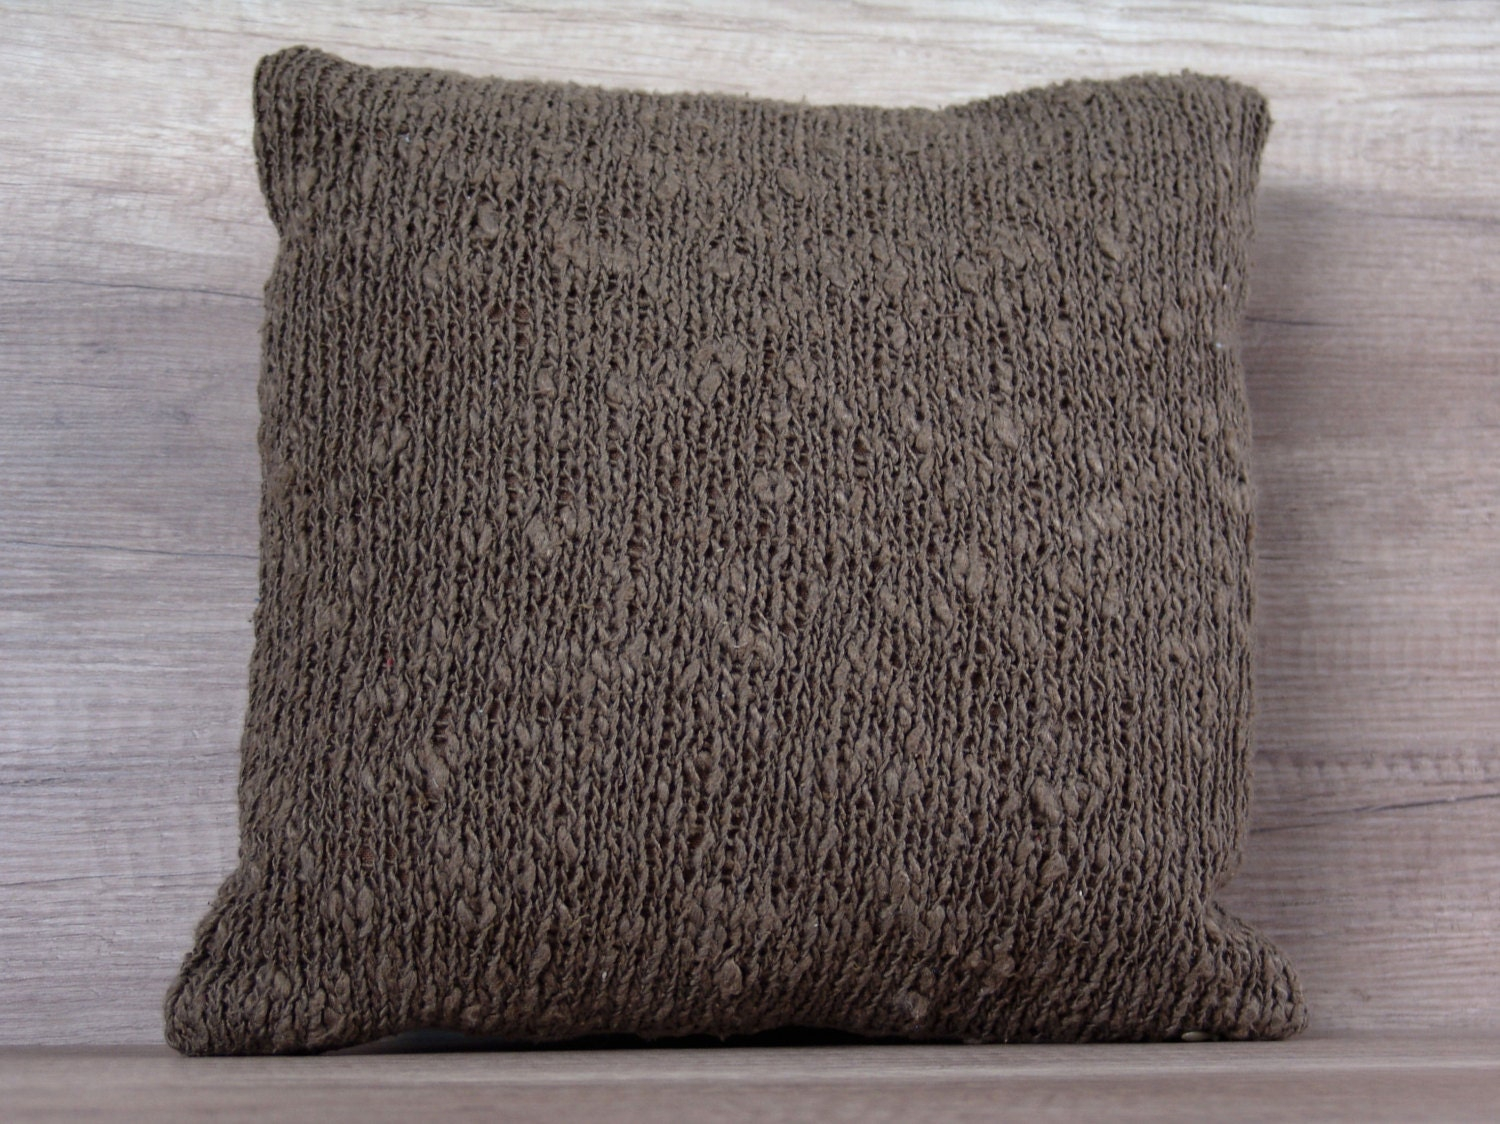 Knitted Euro Pillow Covers Elegant Knit Decorative Throw